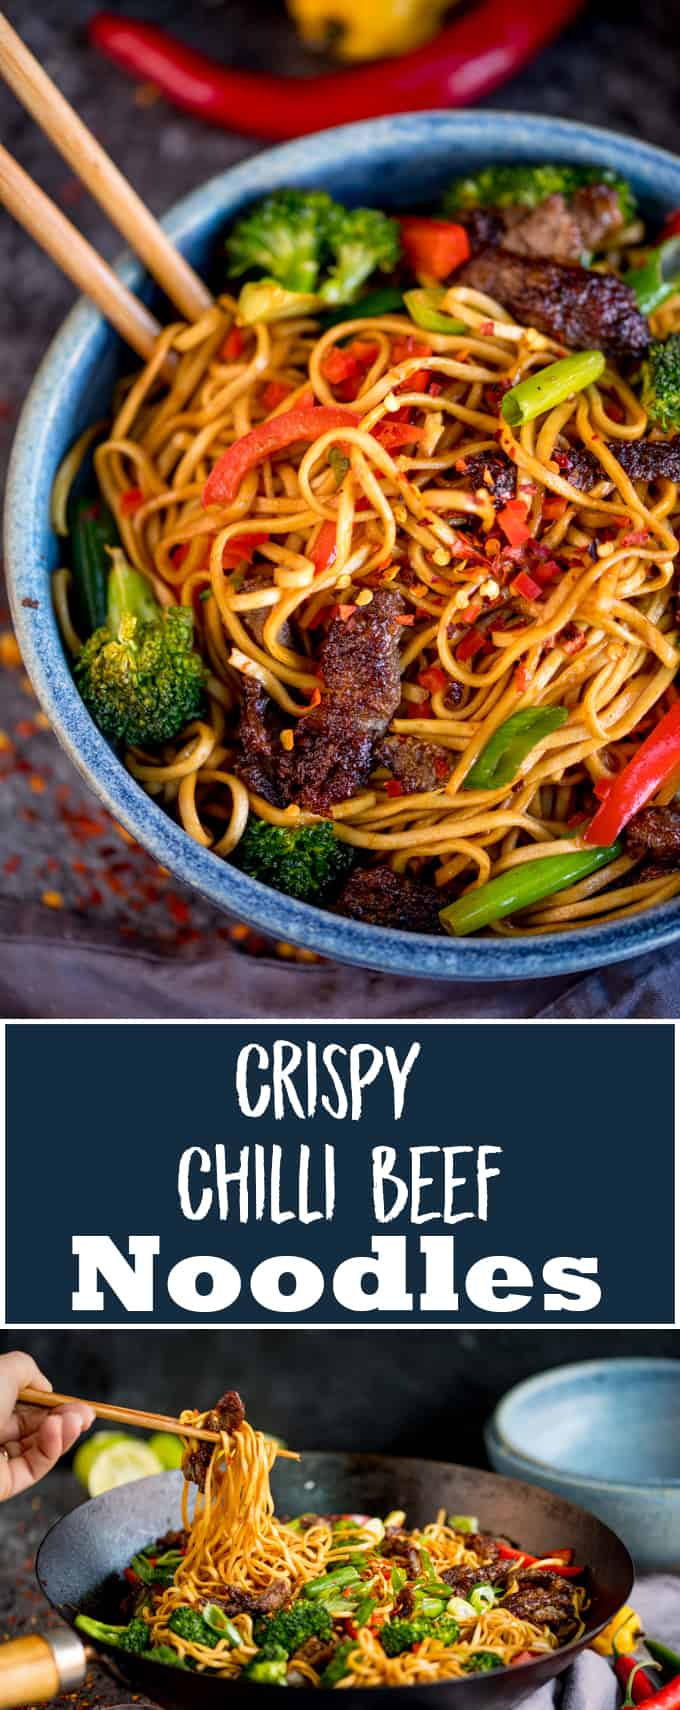 My Crispy Chilli Beef Noodles can be on the table in 20 minutes. A great alternative to that Chinese takeaway! #betterthantakeout #chilibeef #chillibeef #chinese #asianfood